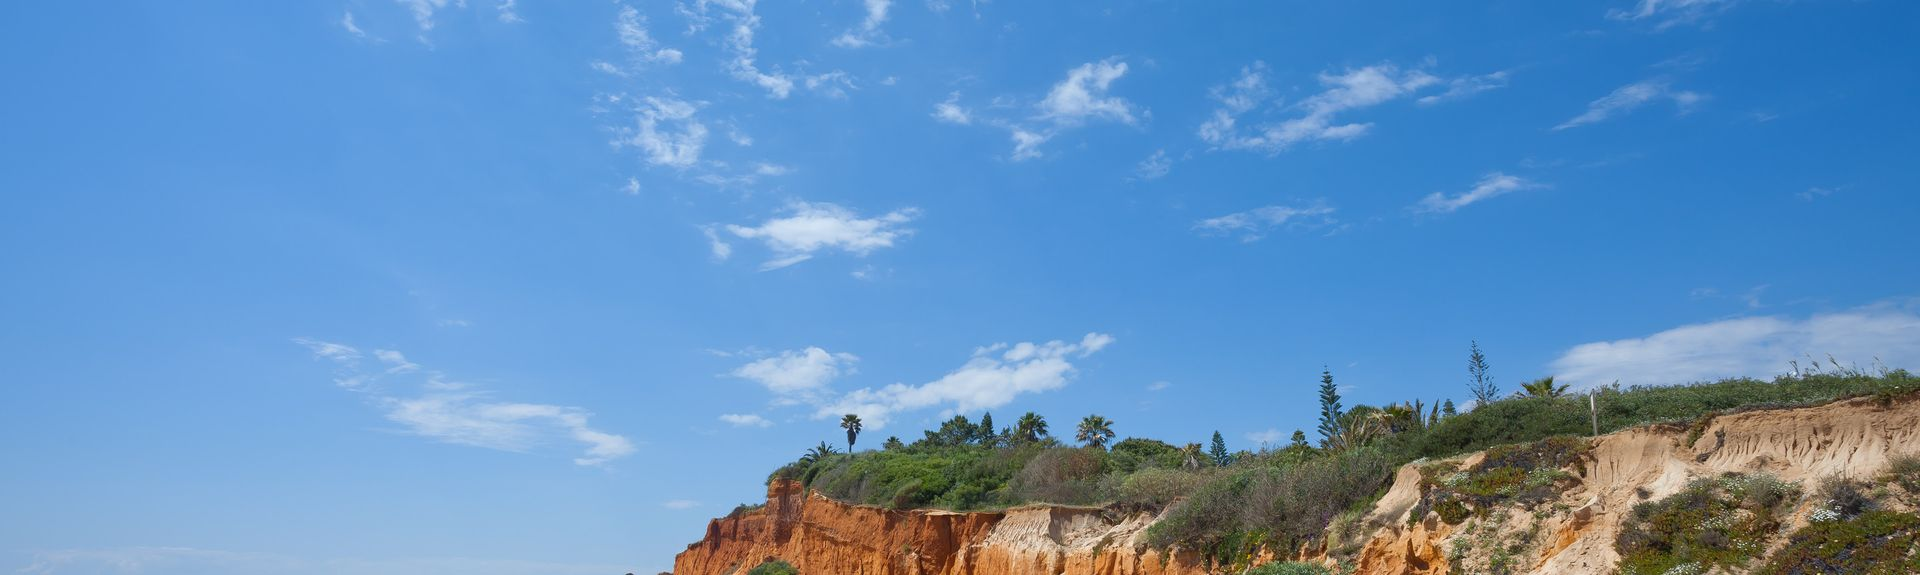 Vale do Lobo, Almancil, District de Faro, Portugal